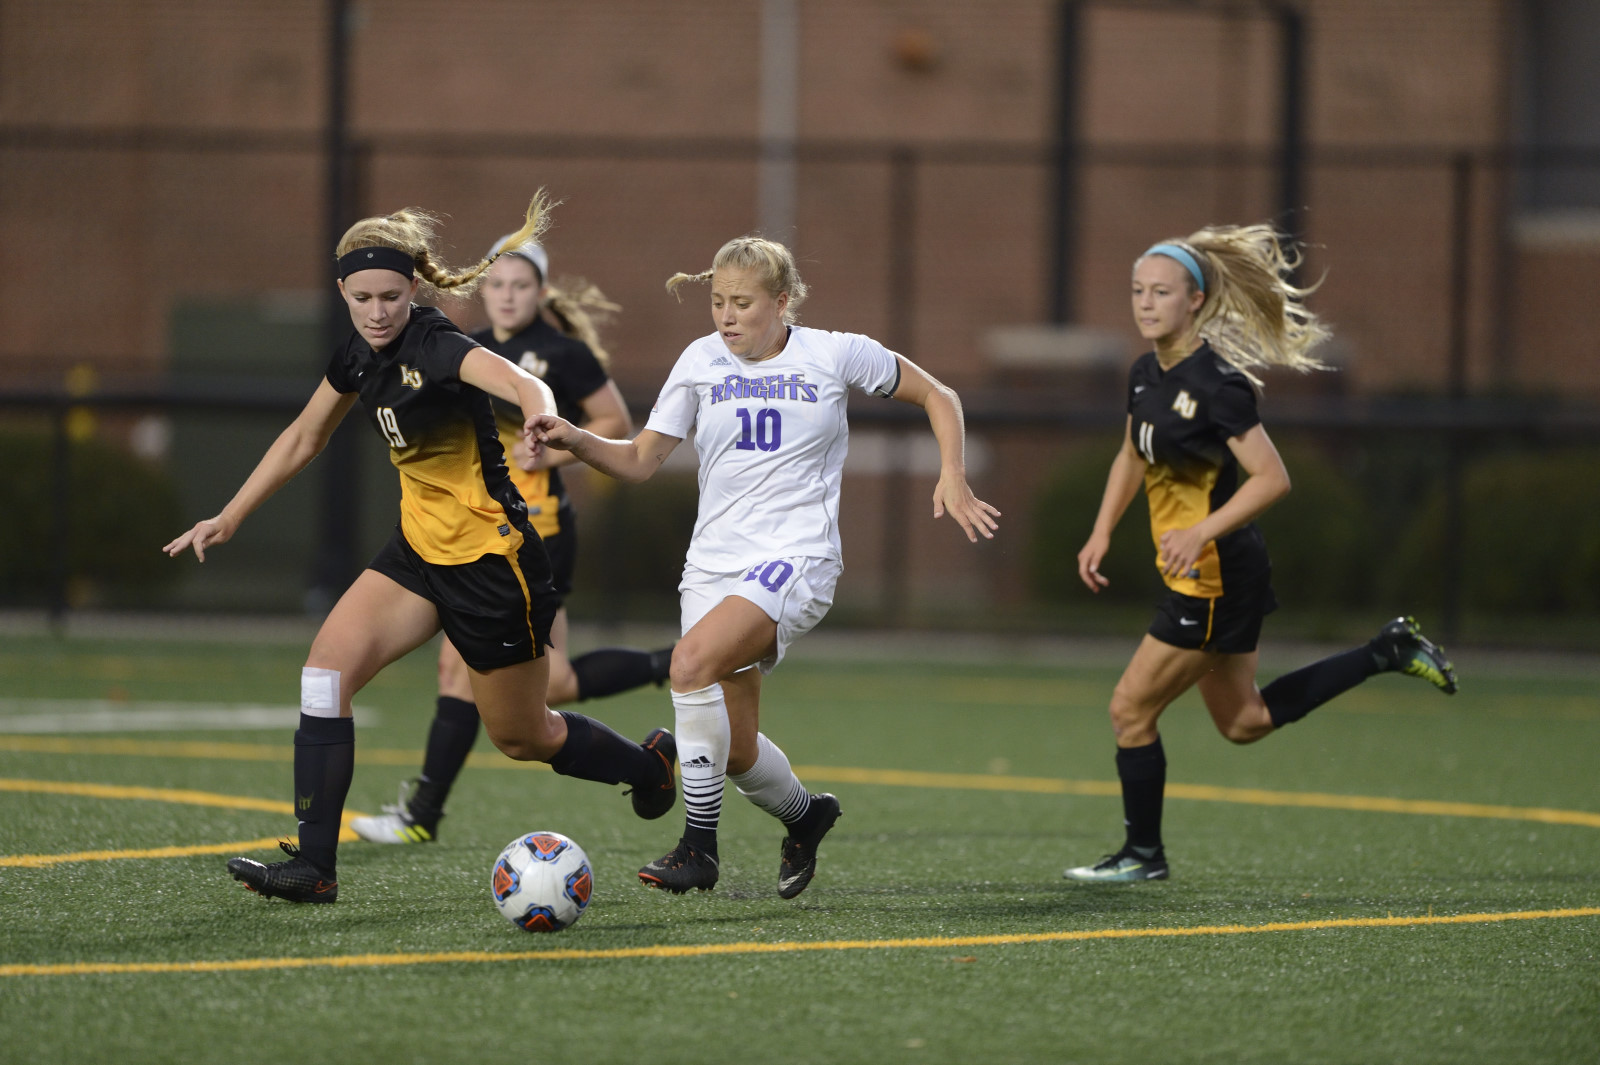 UB Women's Soccer Blanks Holy Family, 3-0, To Pick Up Homecoming Victory